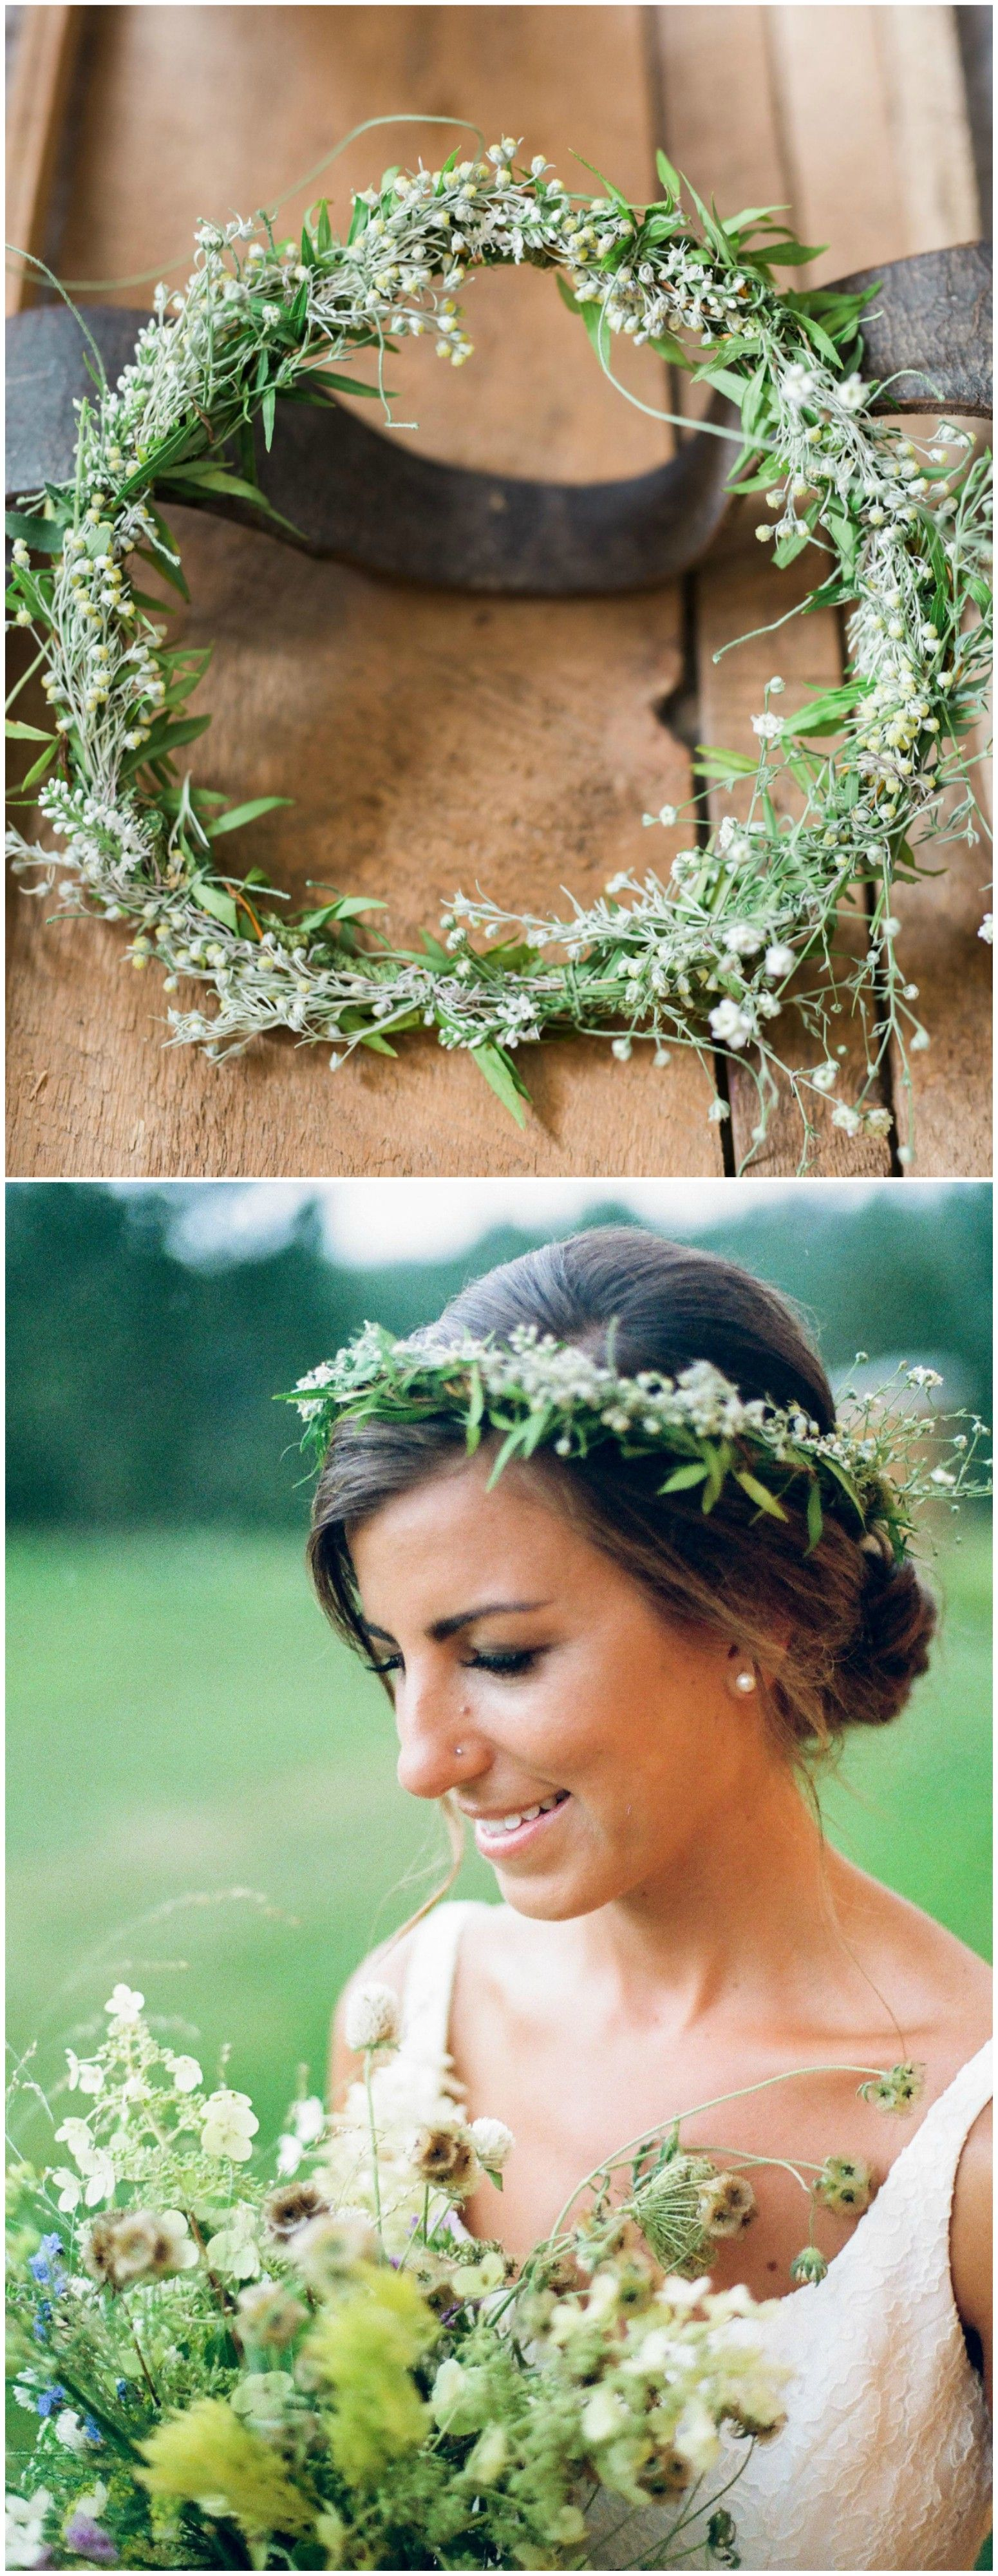 Natural Bridal Hairstyle Wedding Up Do Low Bun Flower Crown